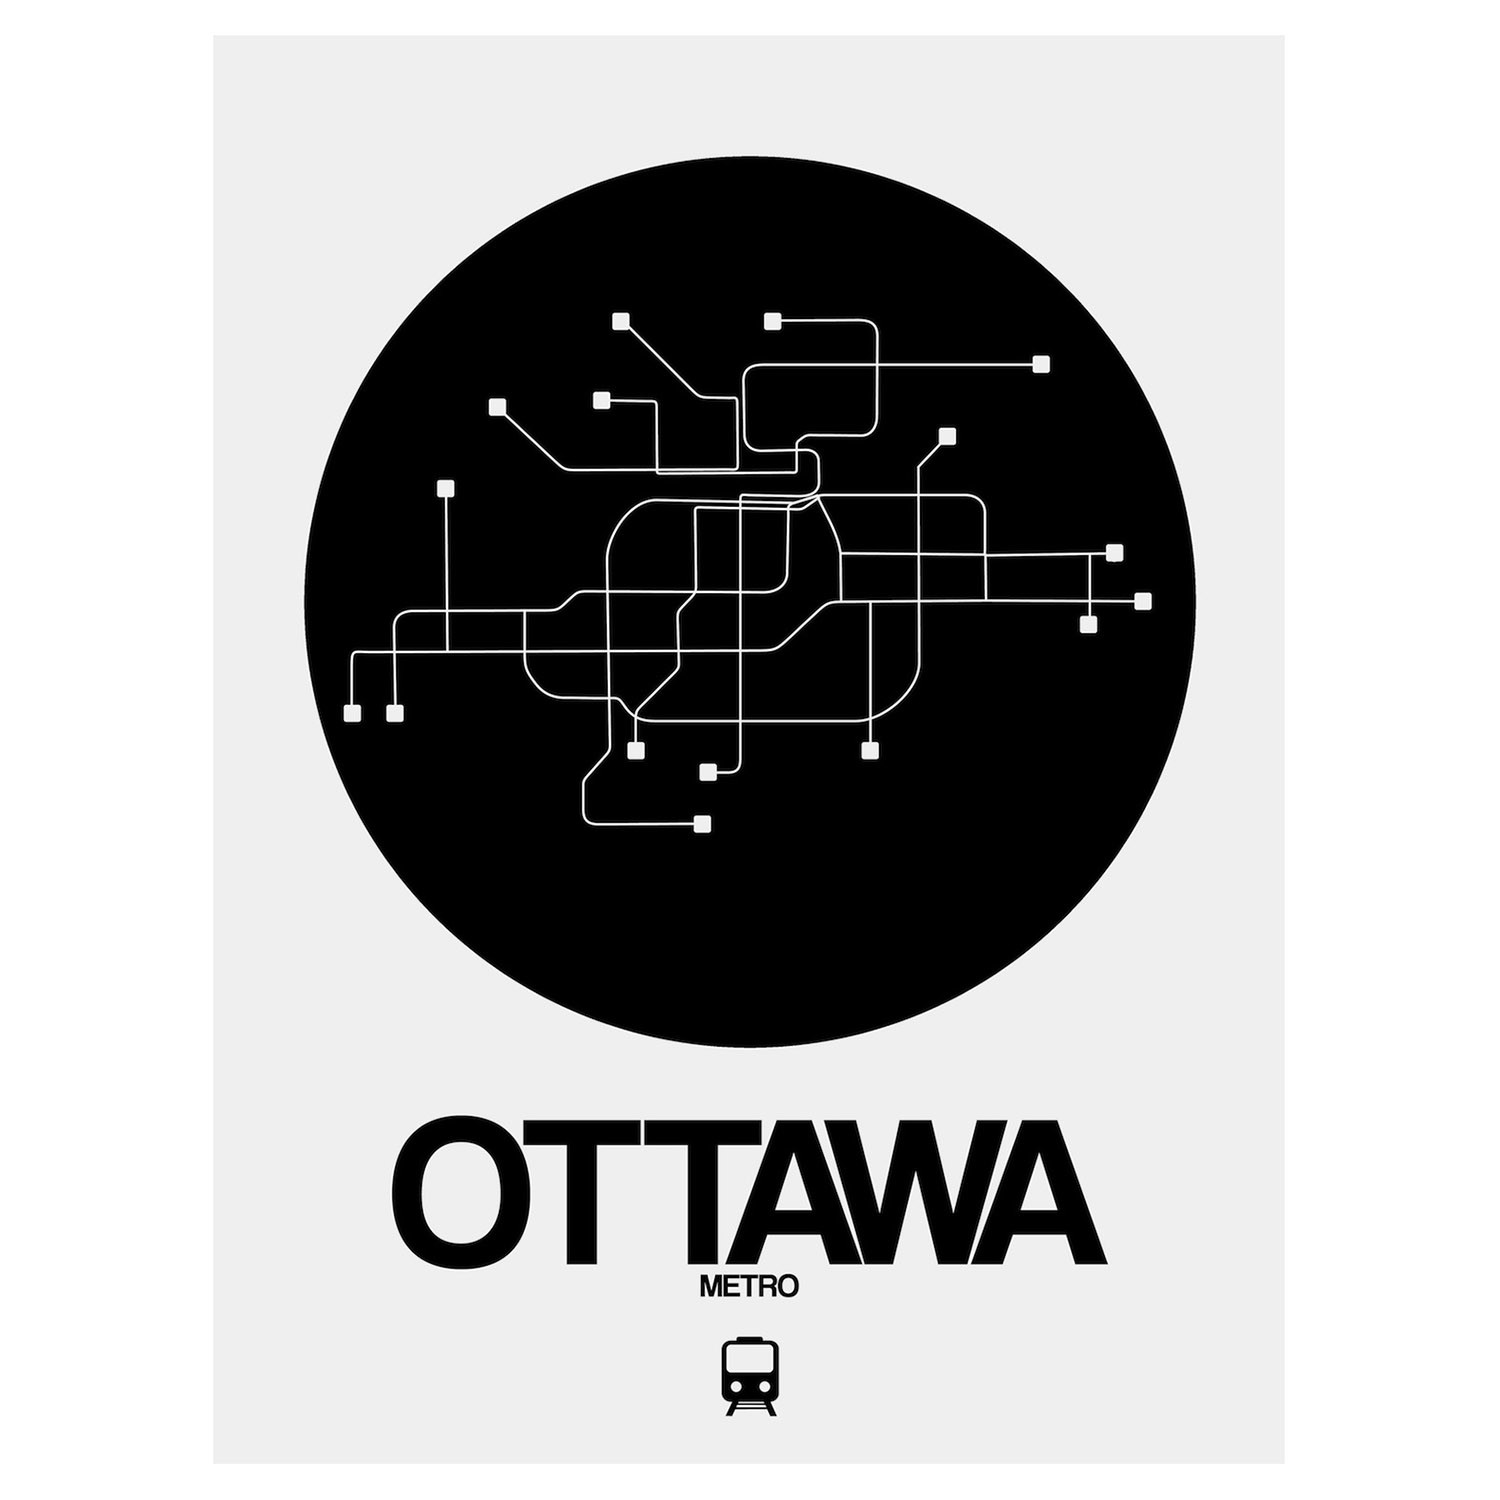 Ottawa Subway Map.Ottawa Subway Map Orange Subway City Maps Touch Of Modern